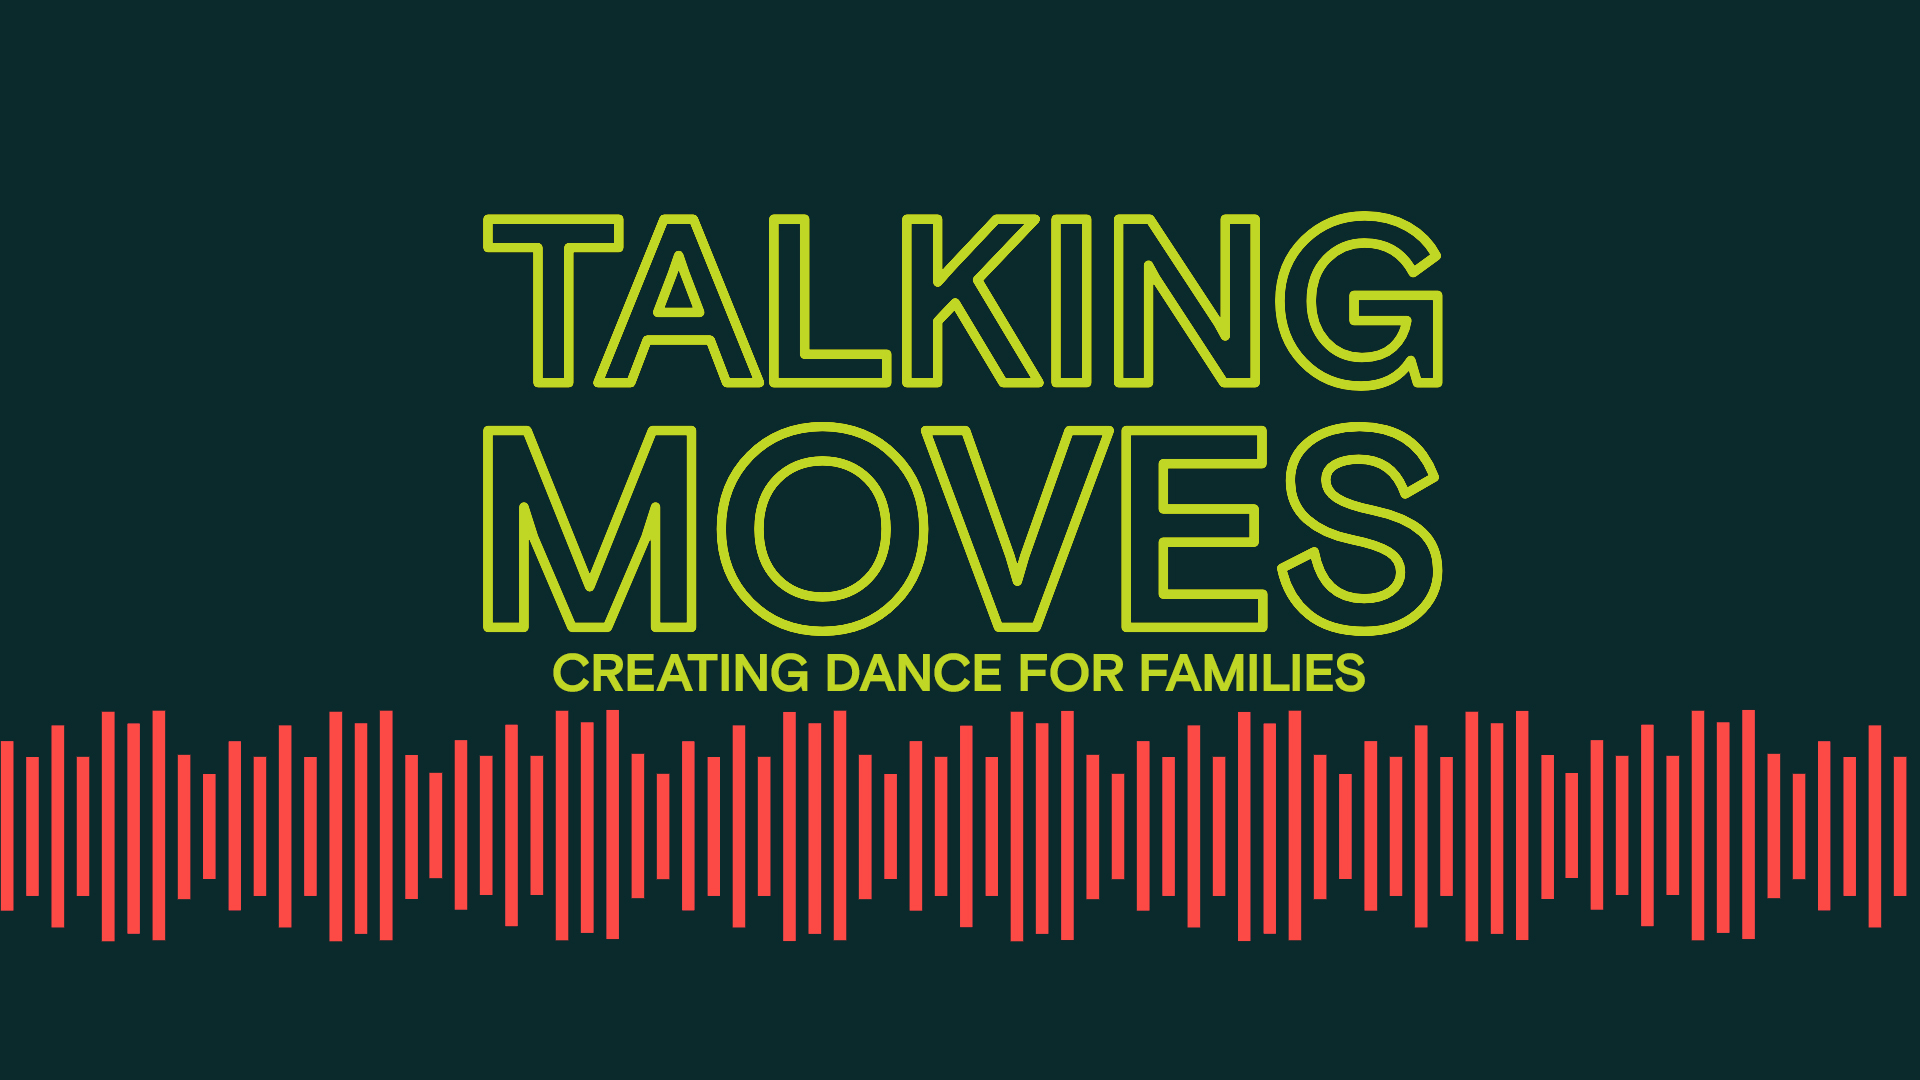 Creating Dance for Families Talking Moves podcast title